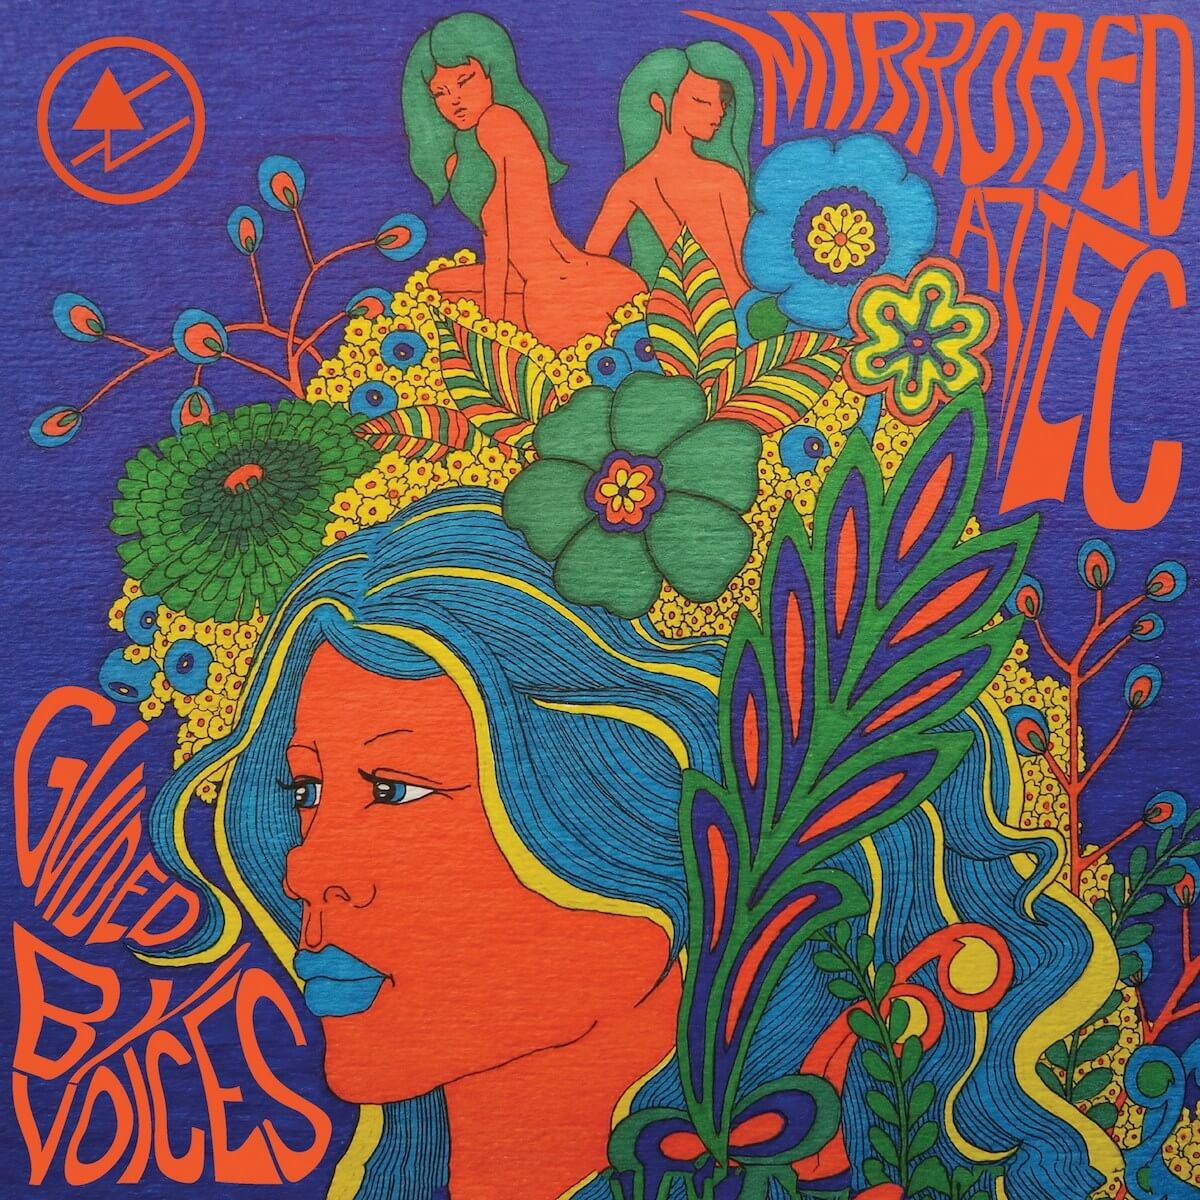 """Guided by Voices - """"Mirrored Aztec"""""""